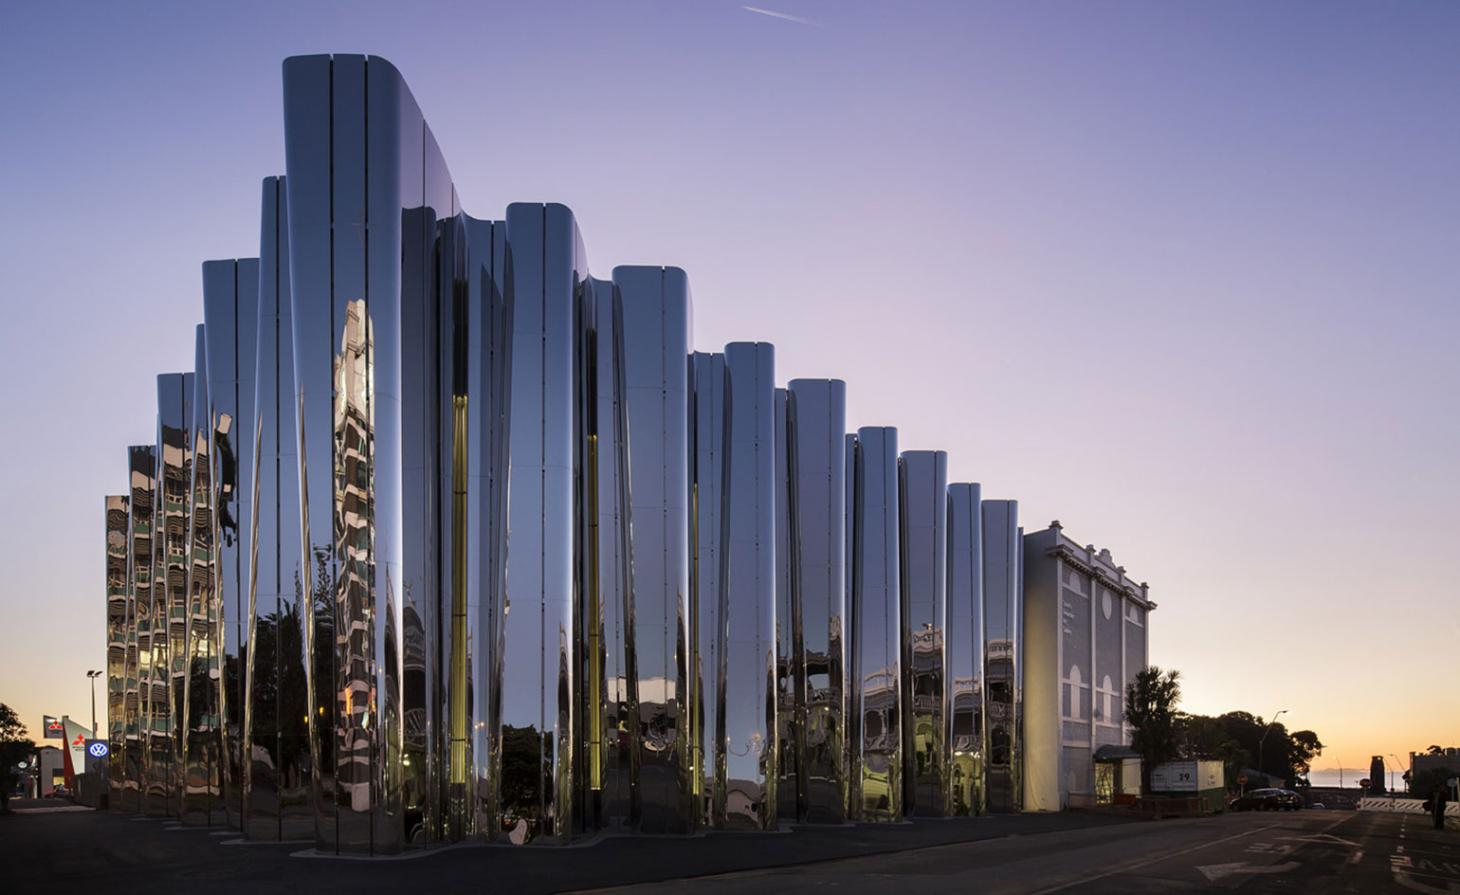 Maori culture and modern art come together at the Len Lye Centre by Pattersons